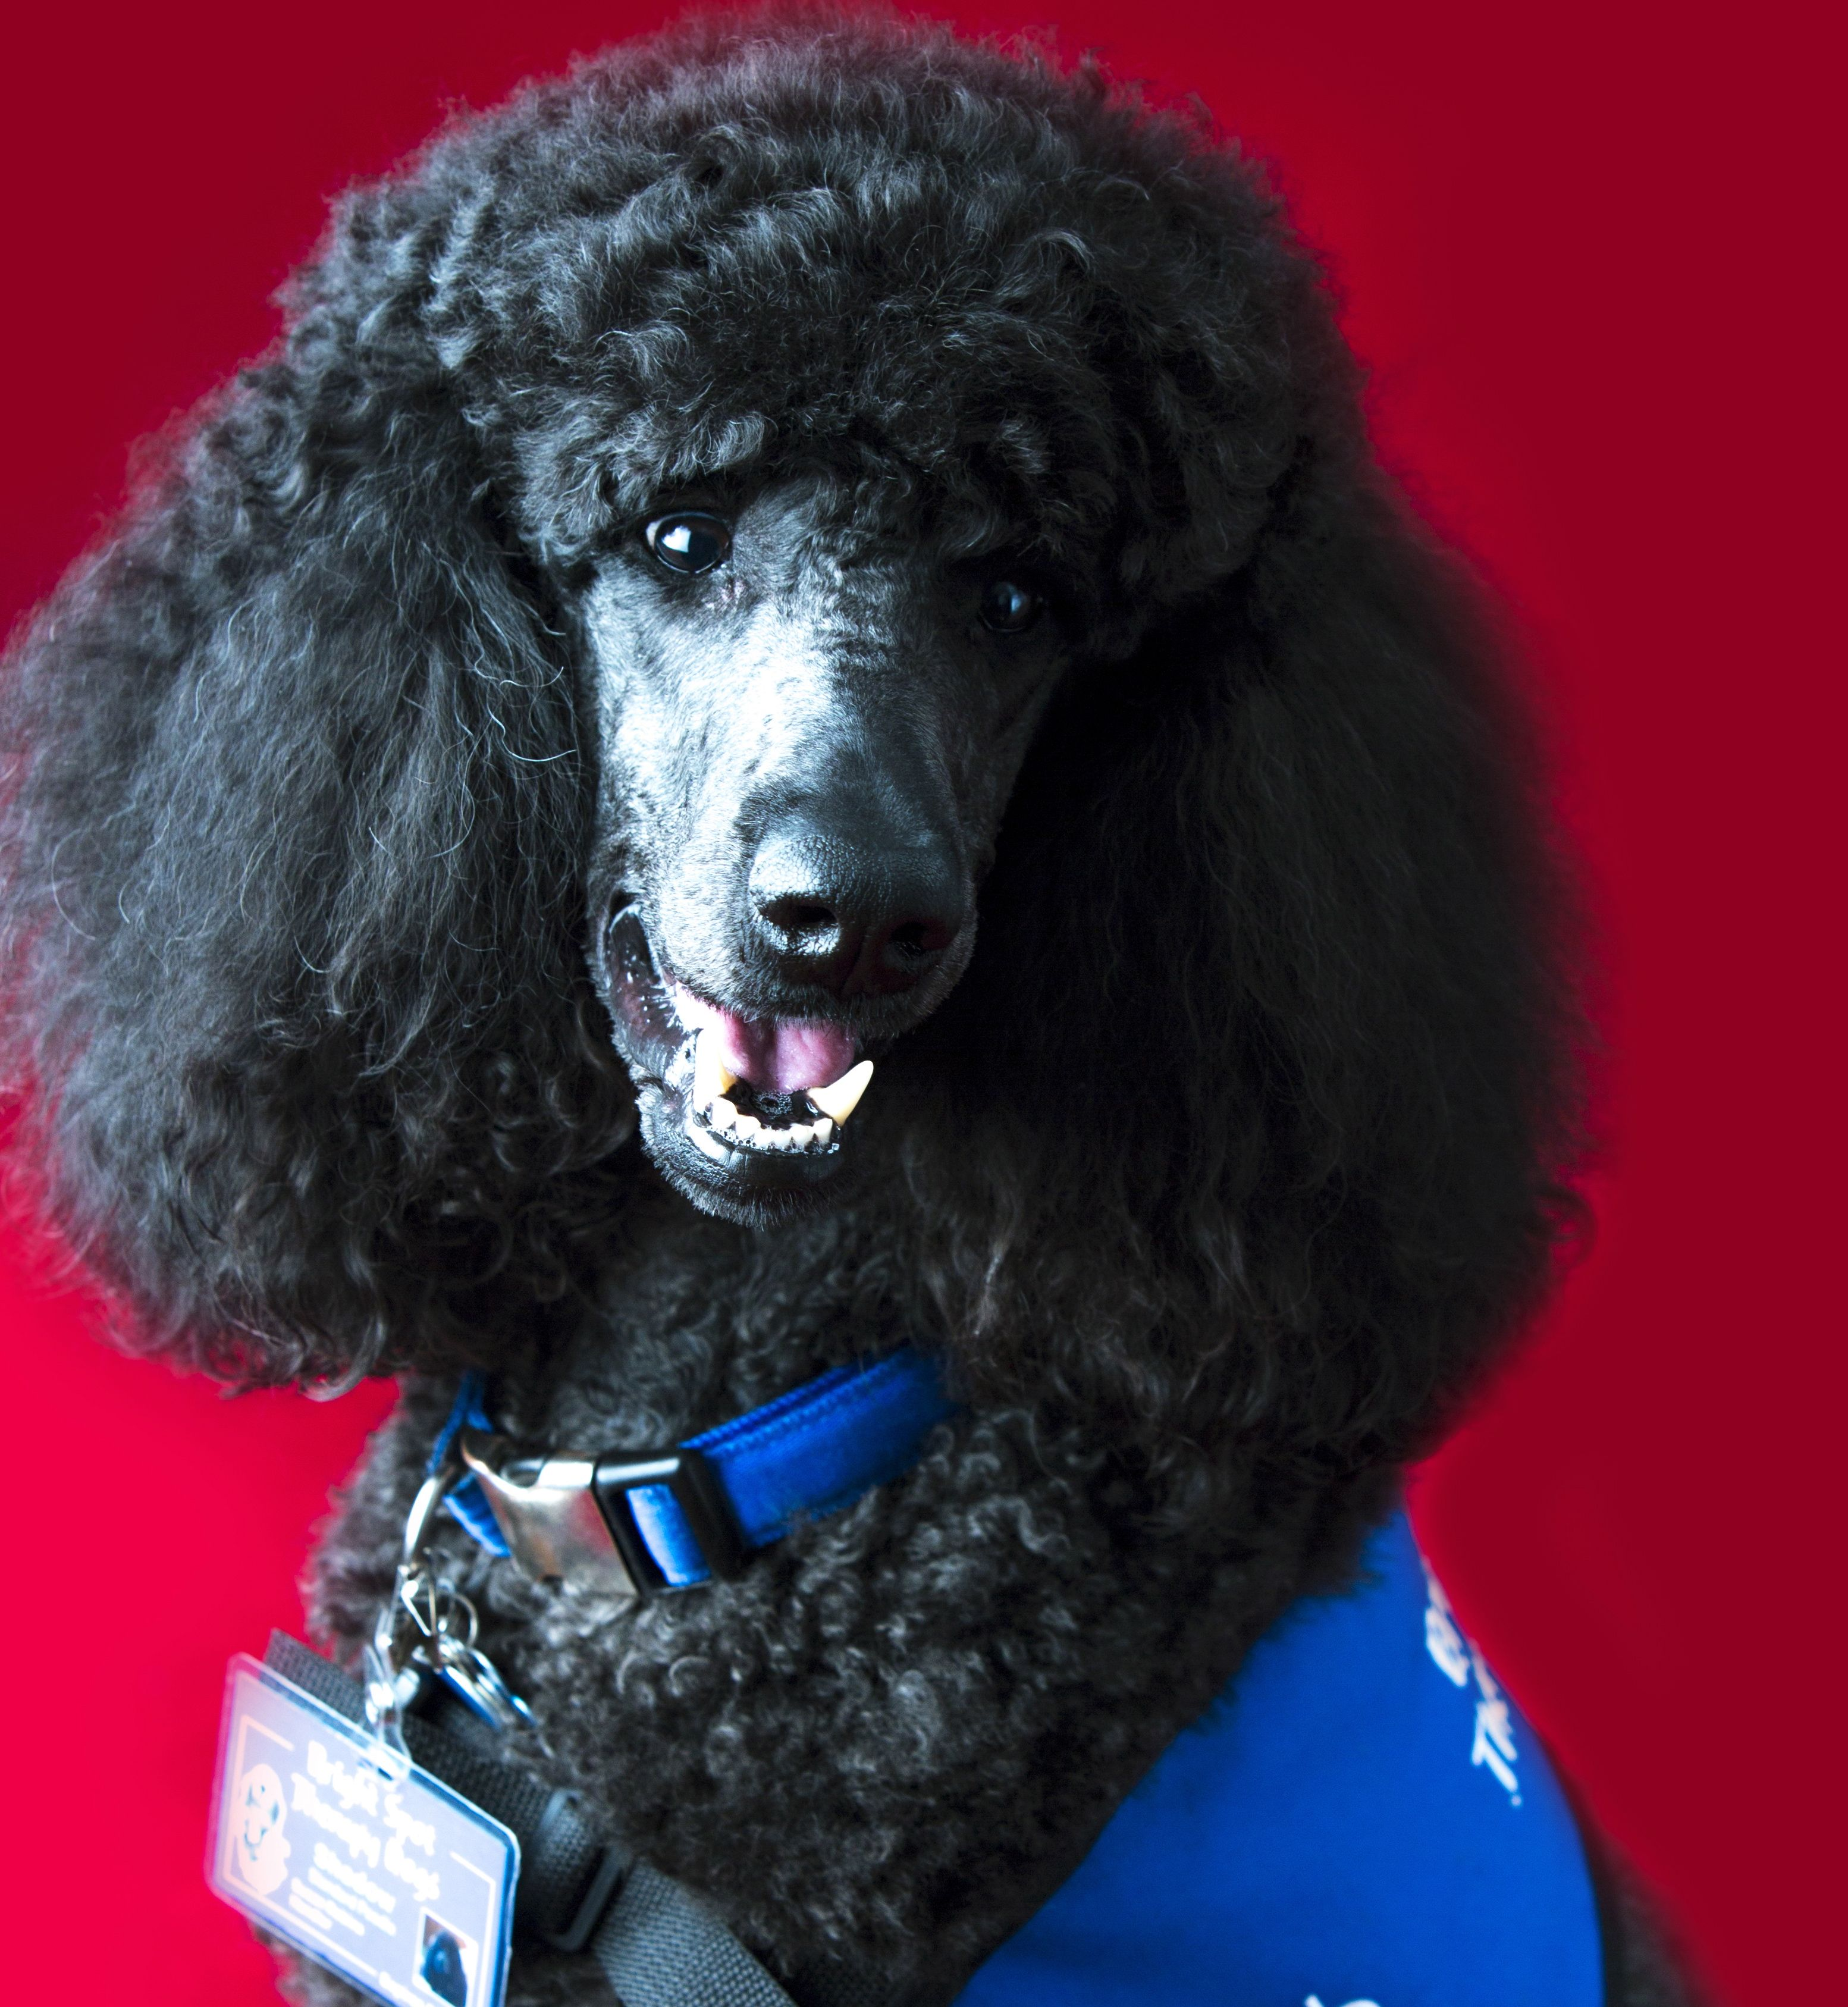 Shadow Is A Member Of The Boston Children S Hospital Dog Visitation Program The Pawprints Program Standard Poodle Dogs With Jobs